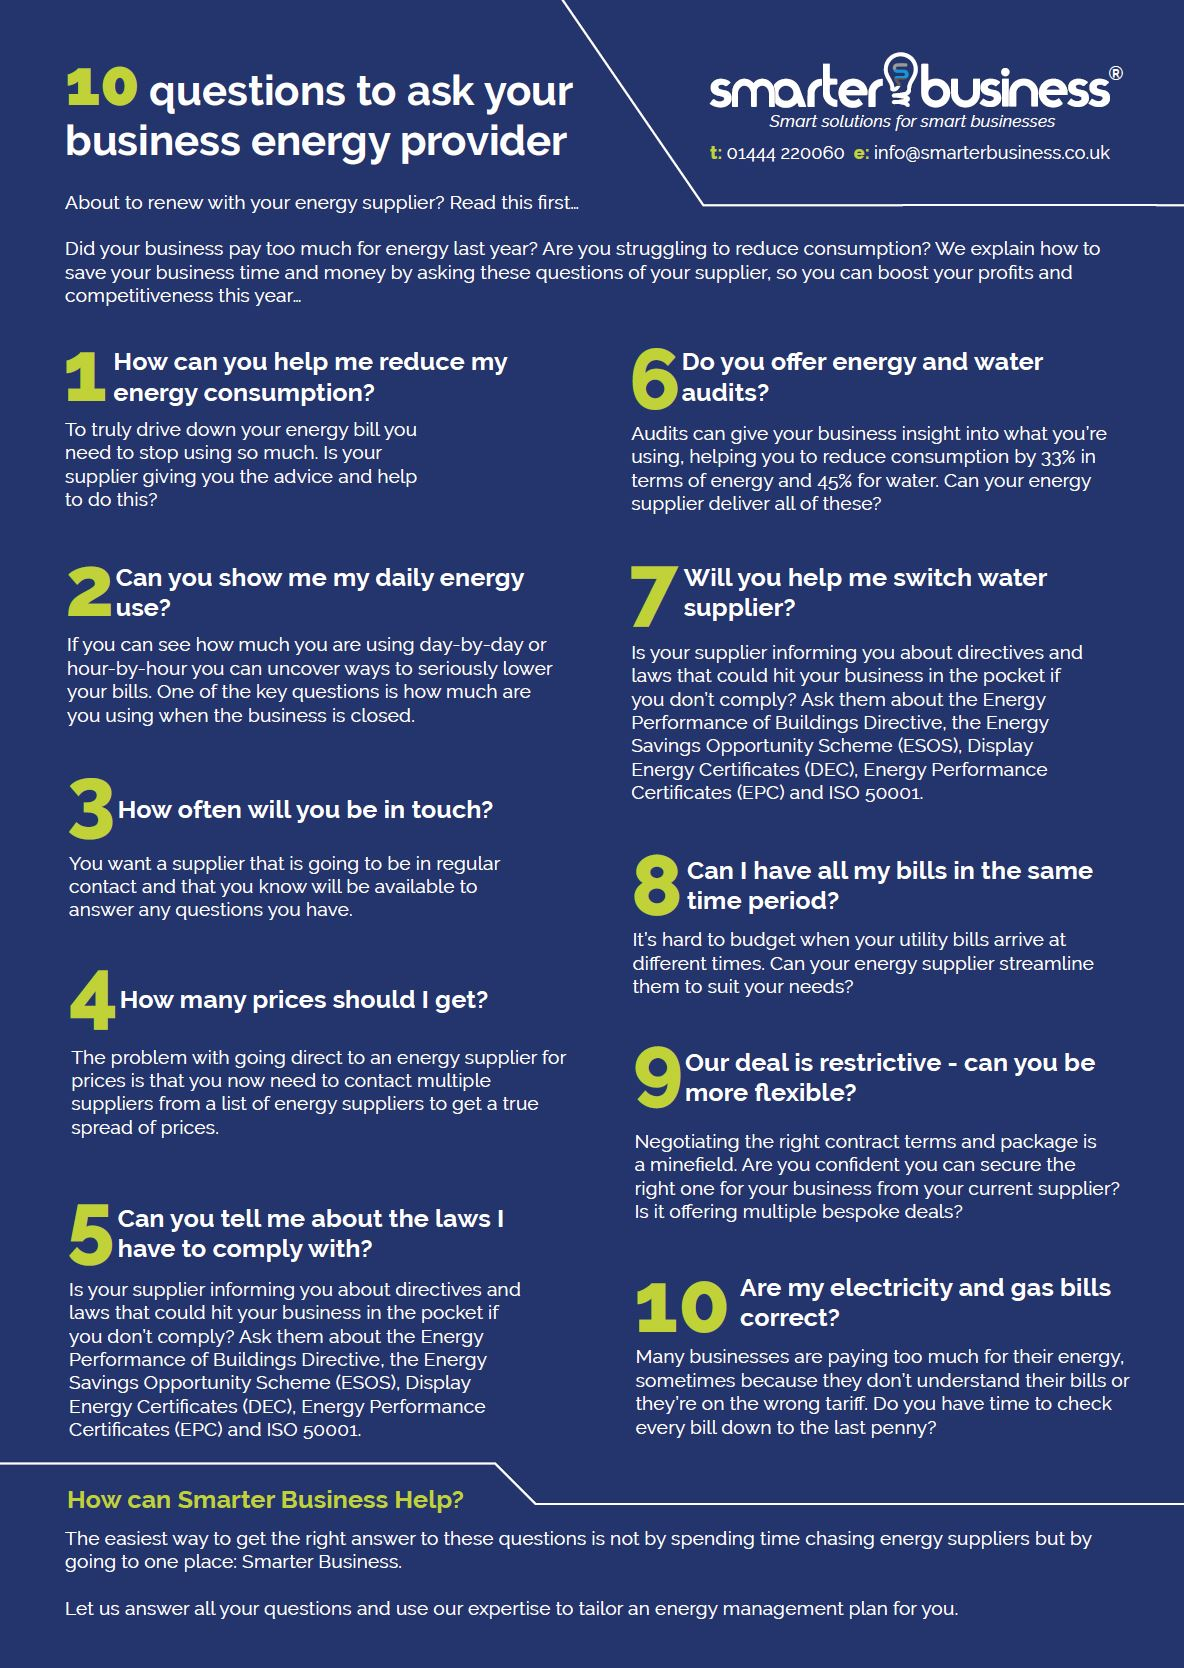 10 questions to ask your business energy supplier